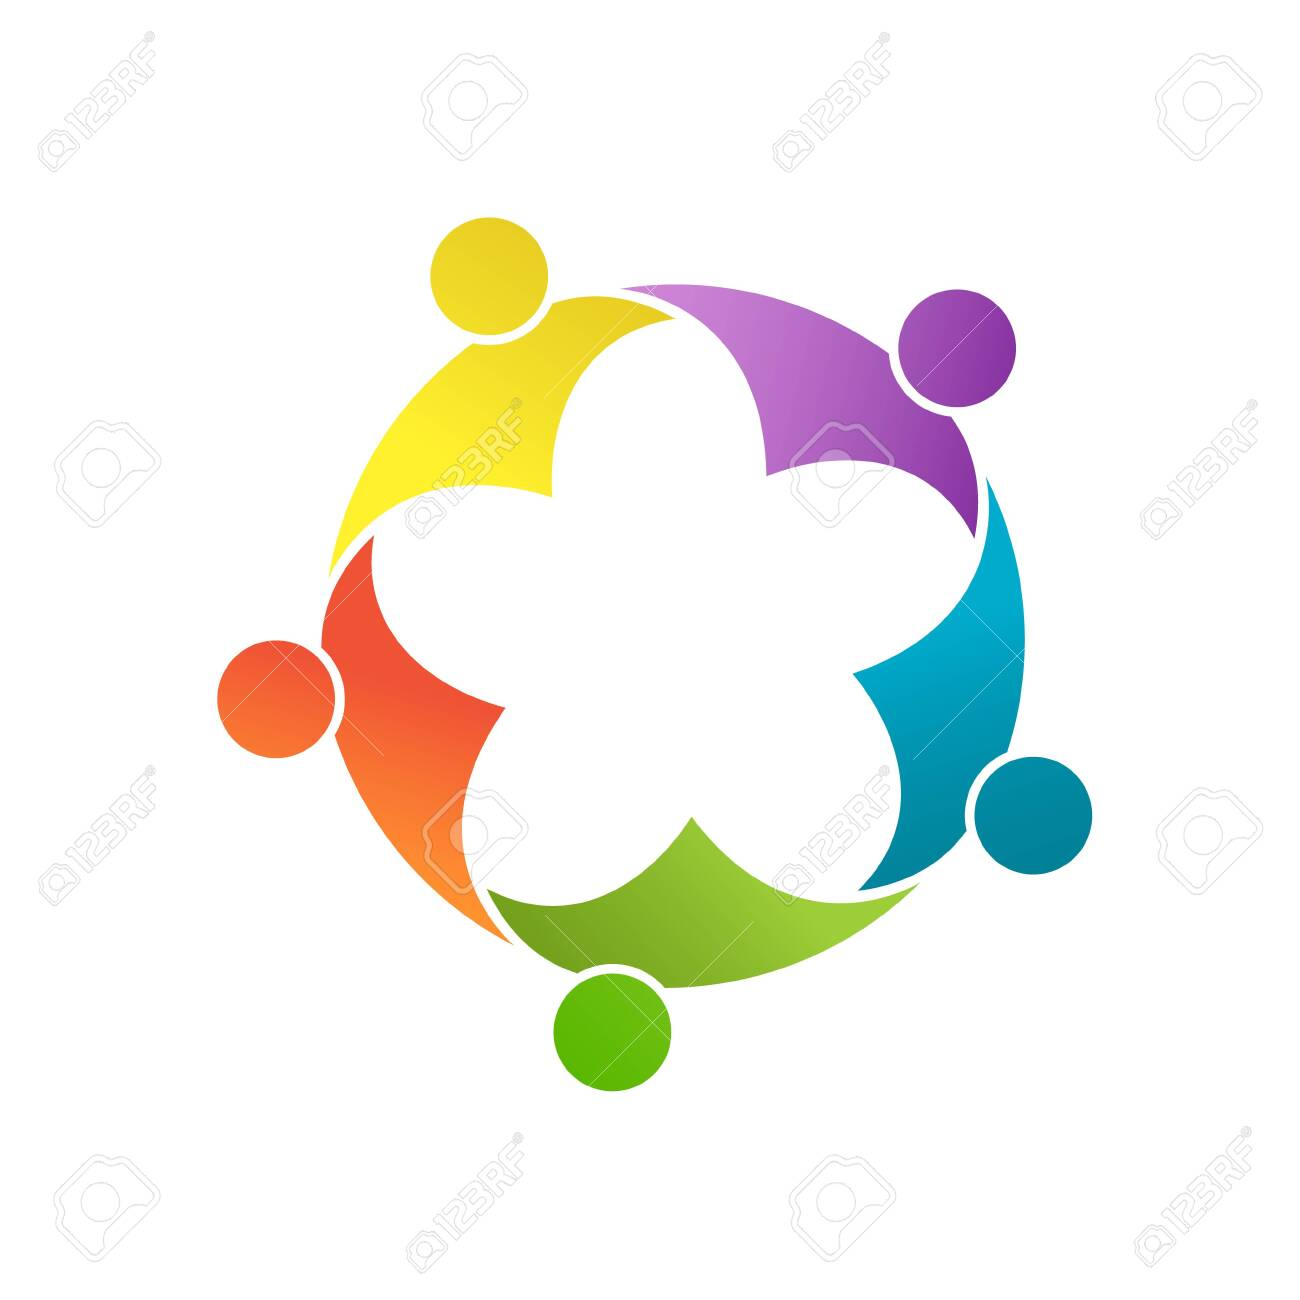 Teamwork, social community, or a group of friends. Vector illustration for banners stickers and clothing, isolated on a white background - 151693738